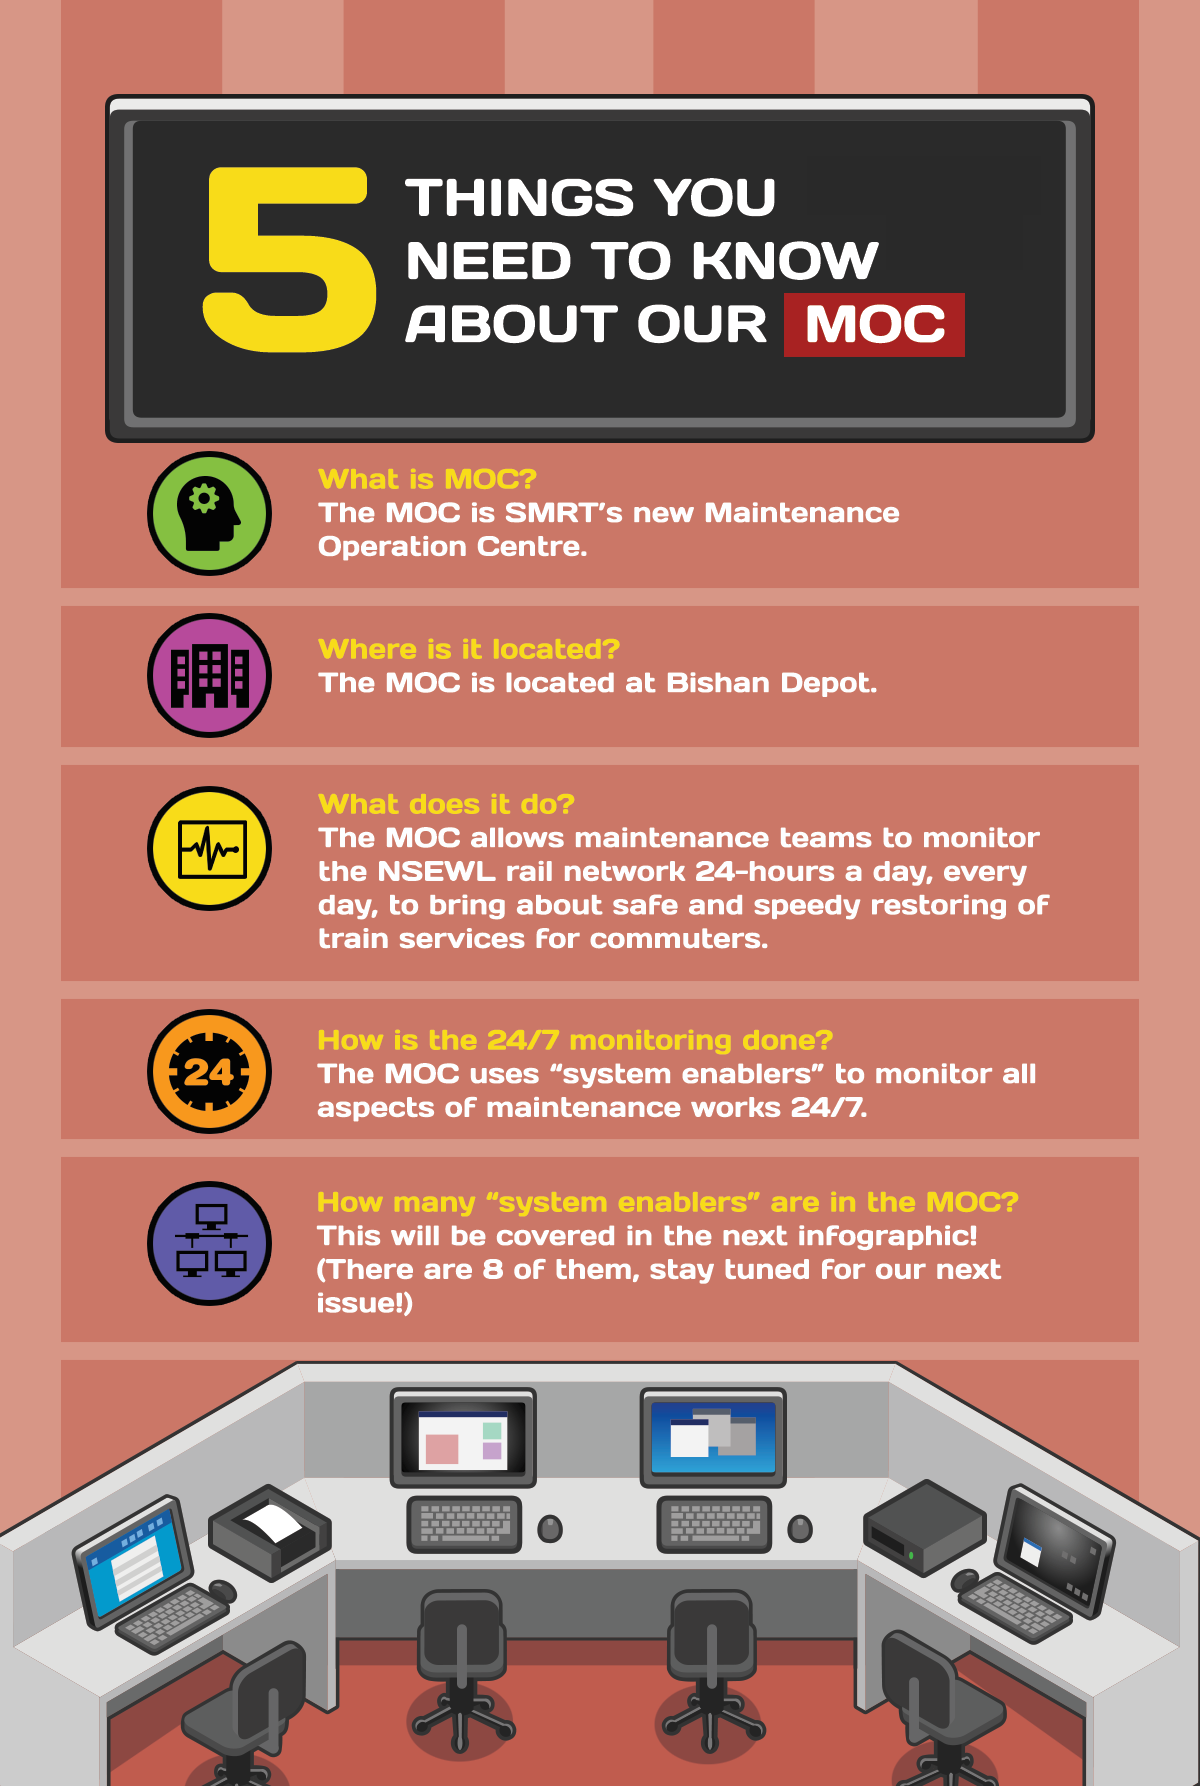 5 things you need to know about our MOC